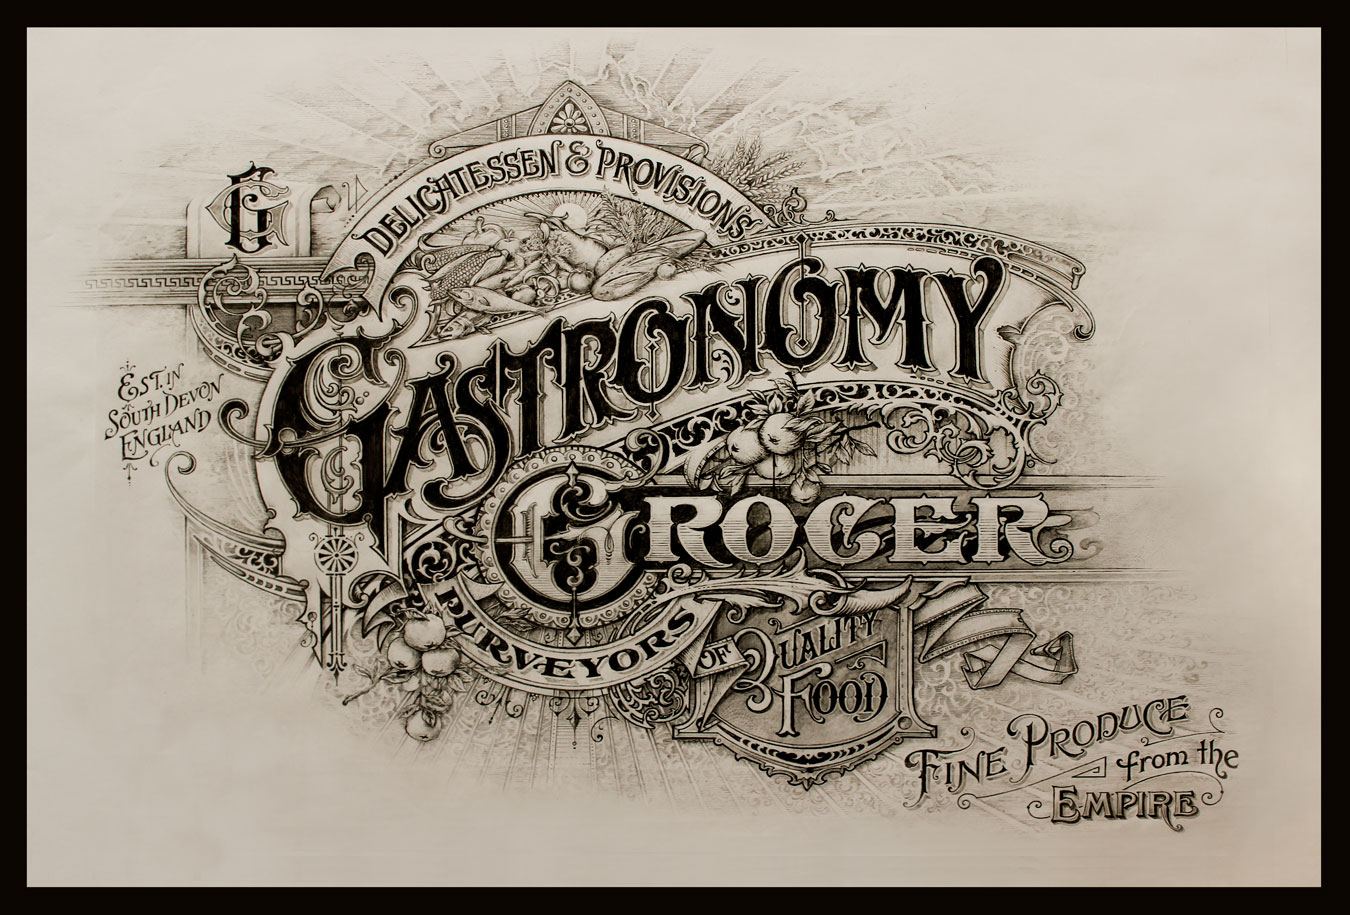 Gastronomy Grocer